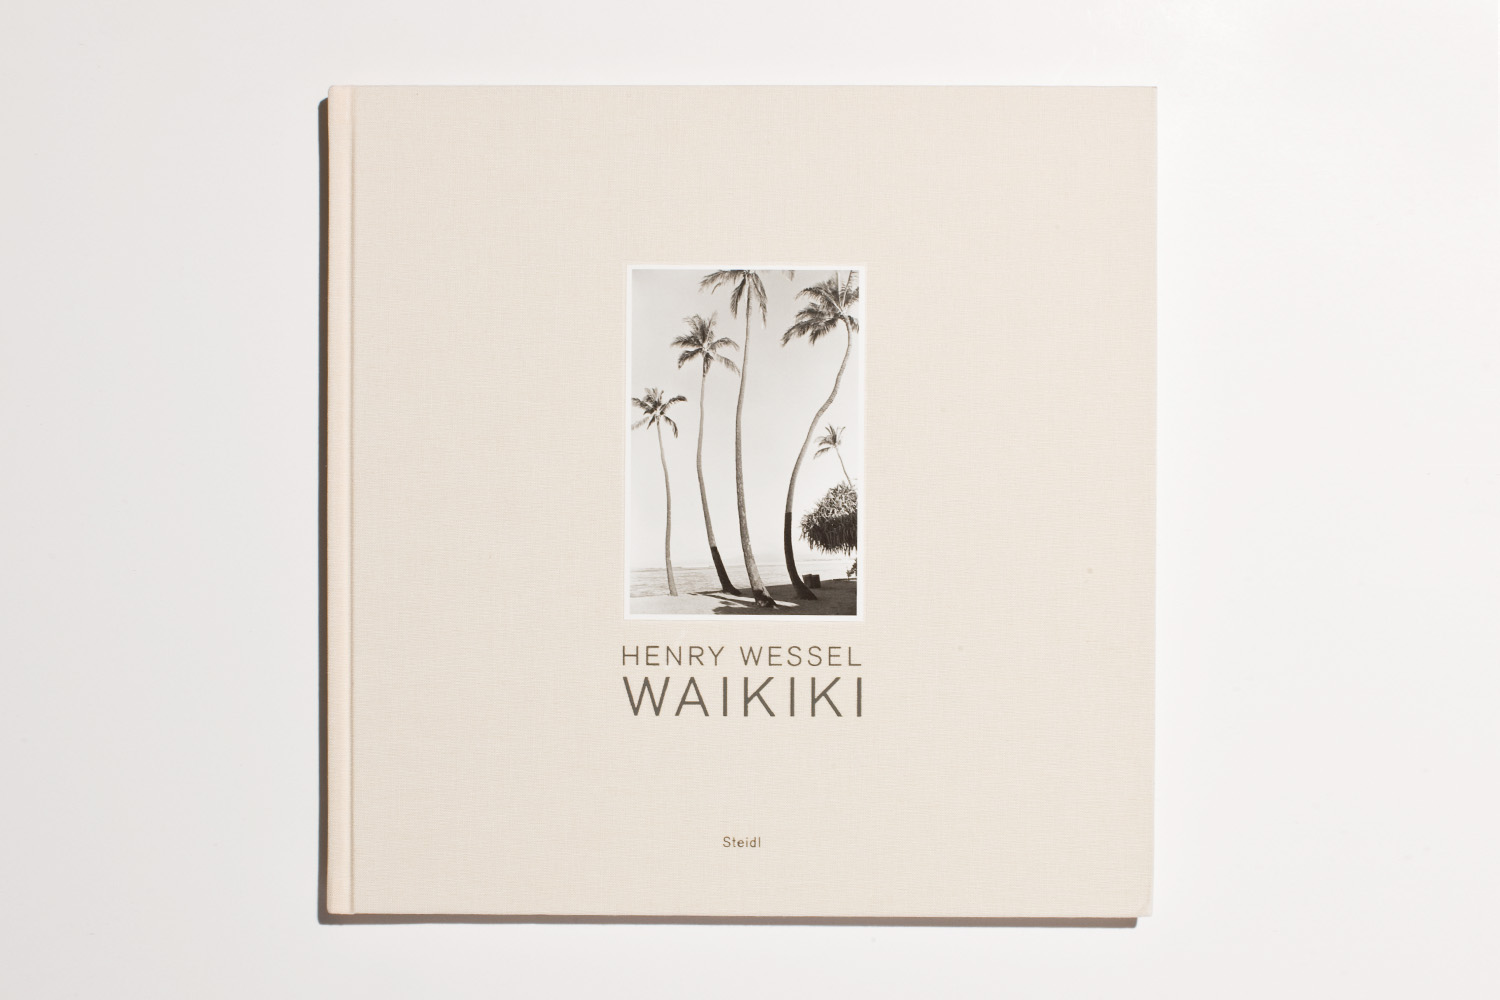 Waikiki by Henry Wessel selected by Paul Moakley, deputy photo editor, TIME